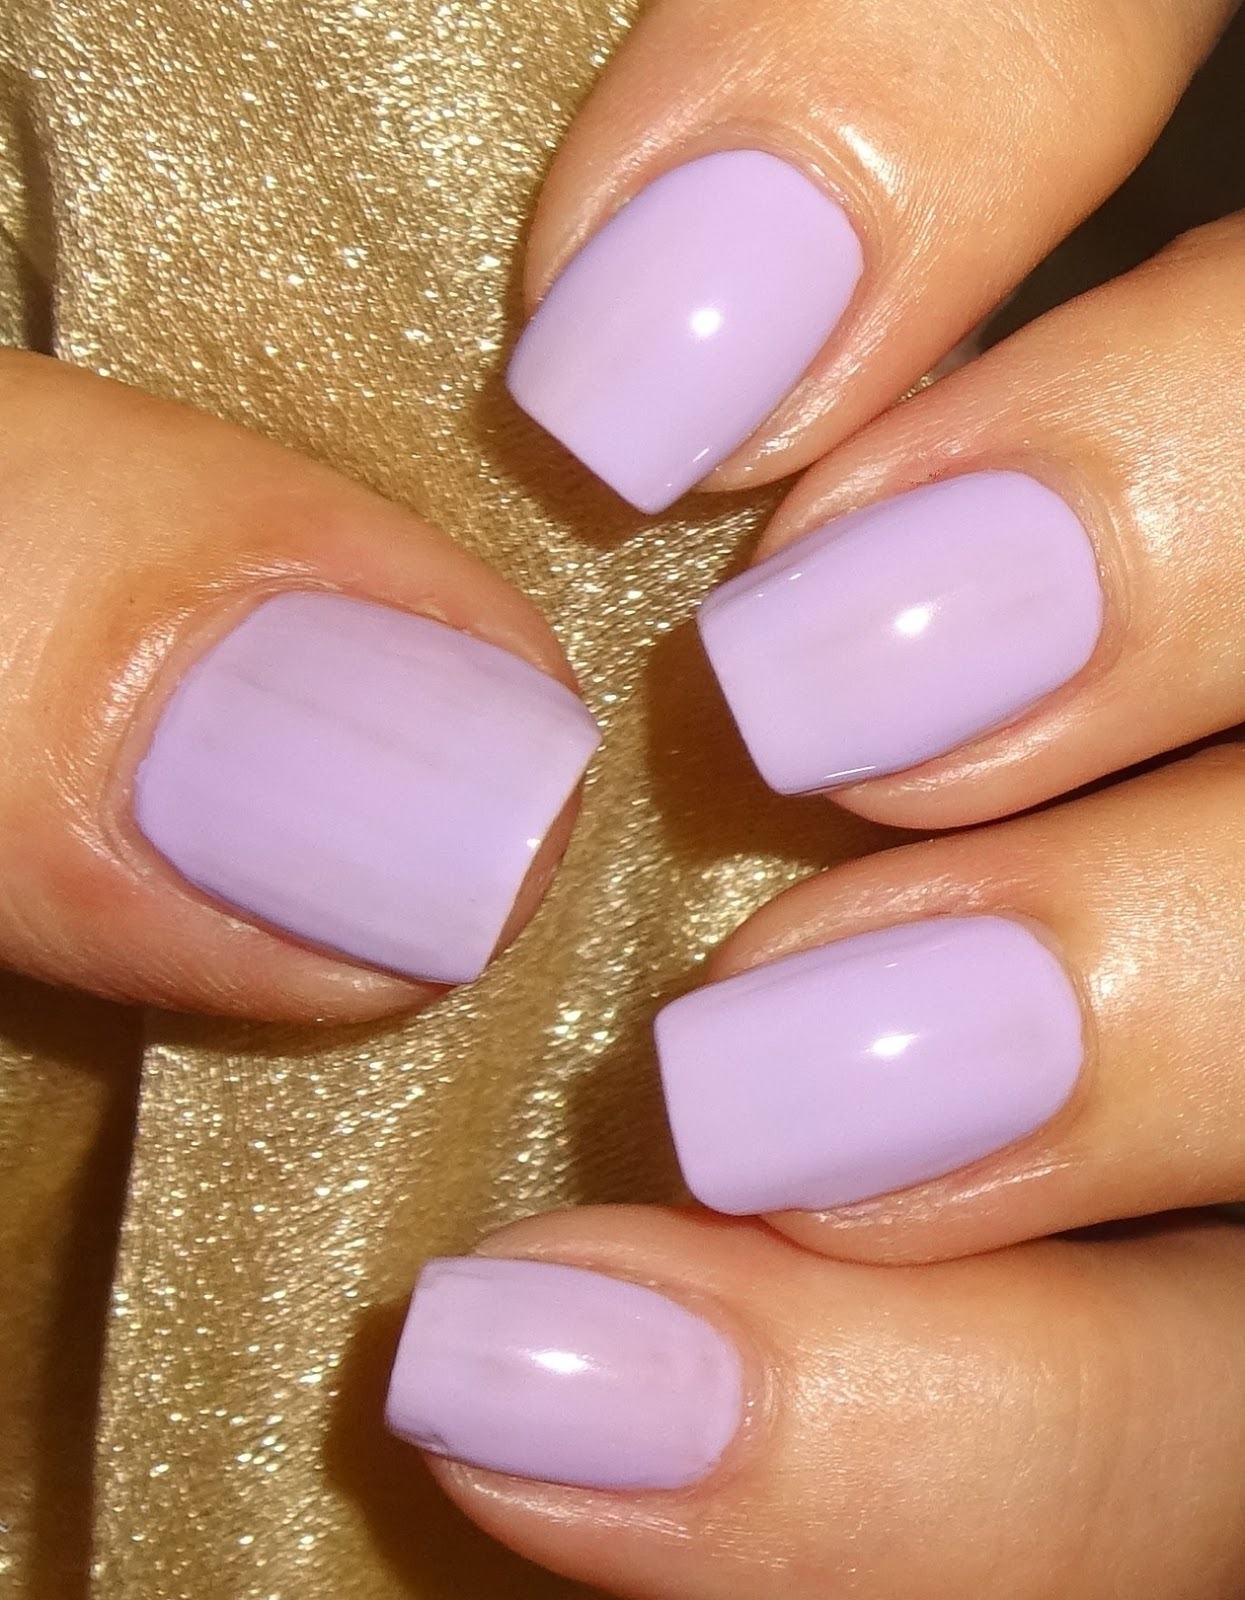 Wendy's Delights: Avon Color Trend Nail Enamel